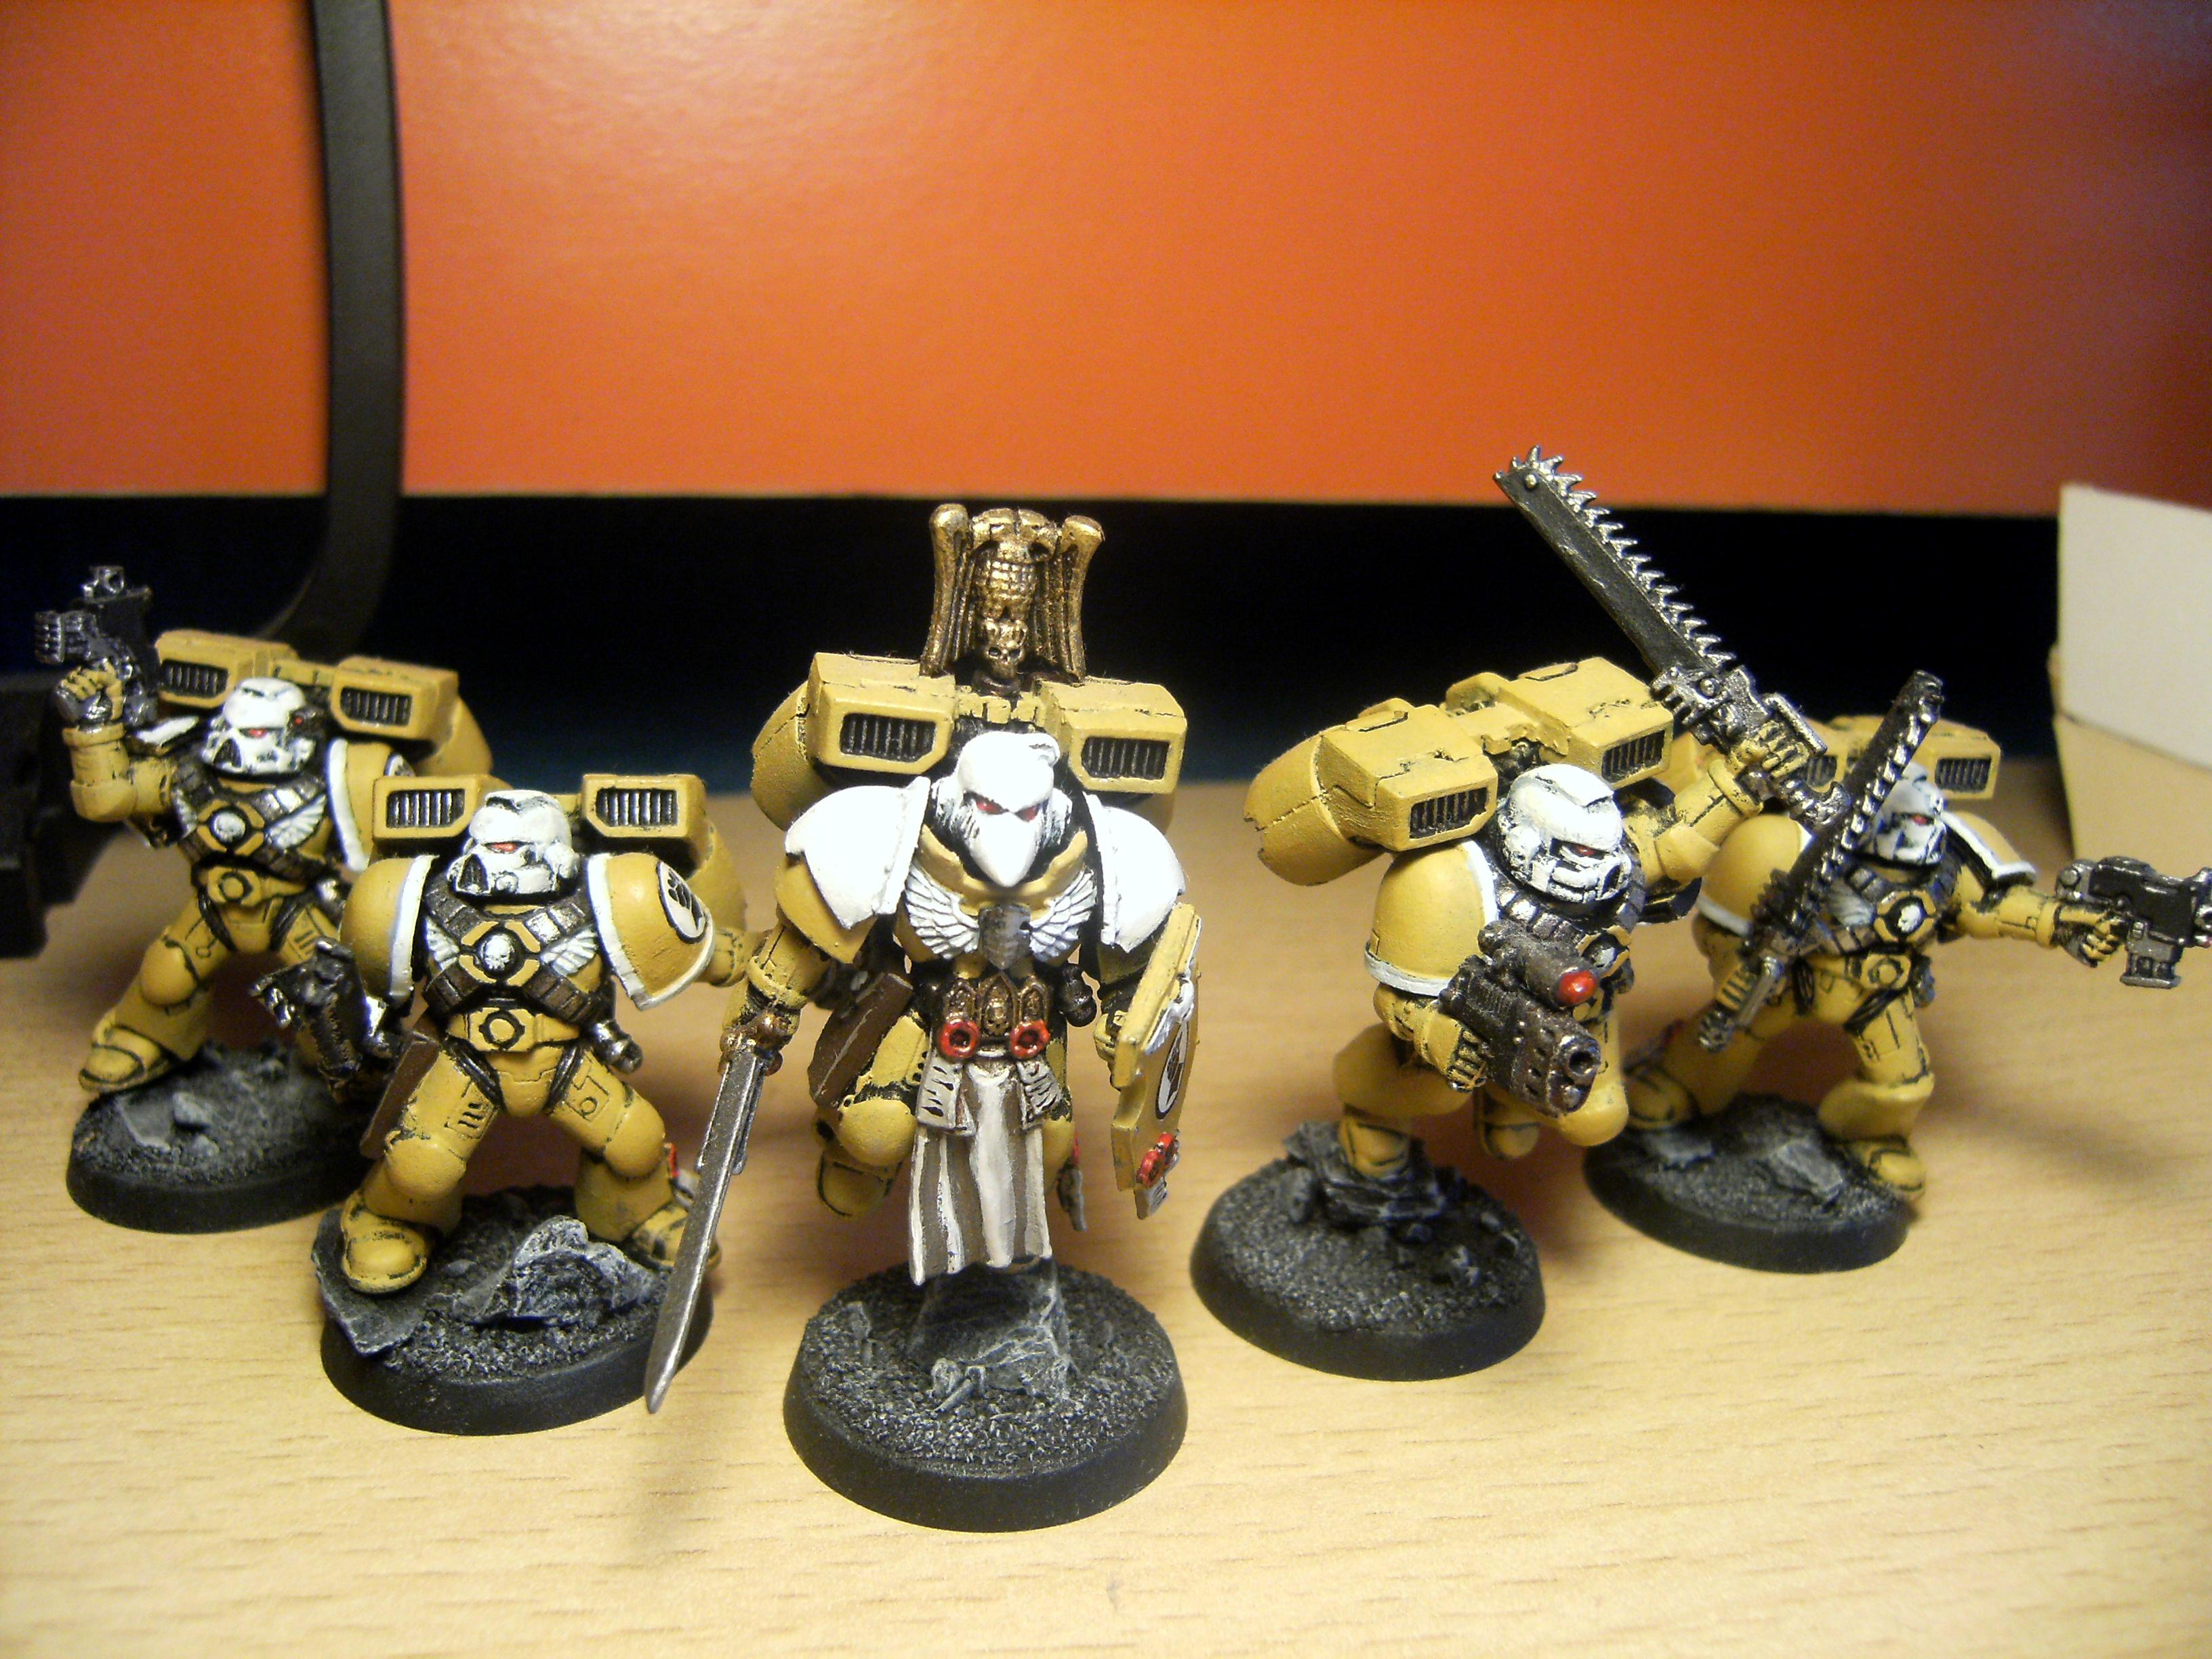 Imperial Fist Space Marines, Imperial Fists, Space Marines, Warhammer 40,000